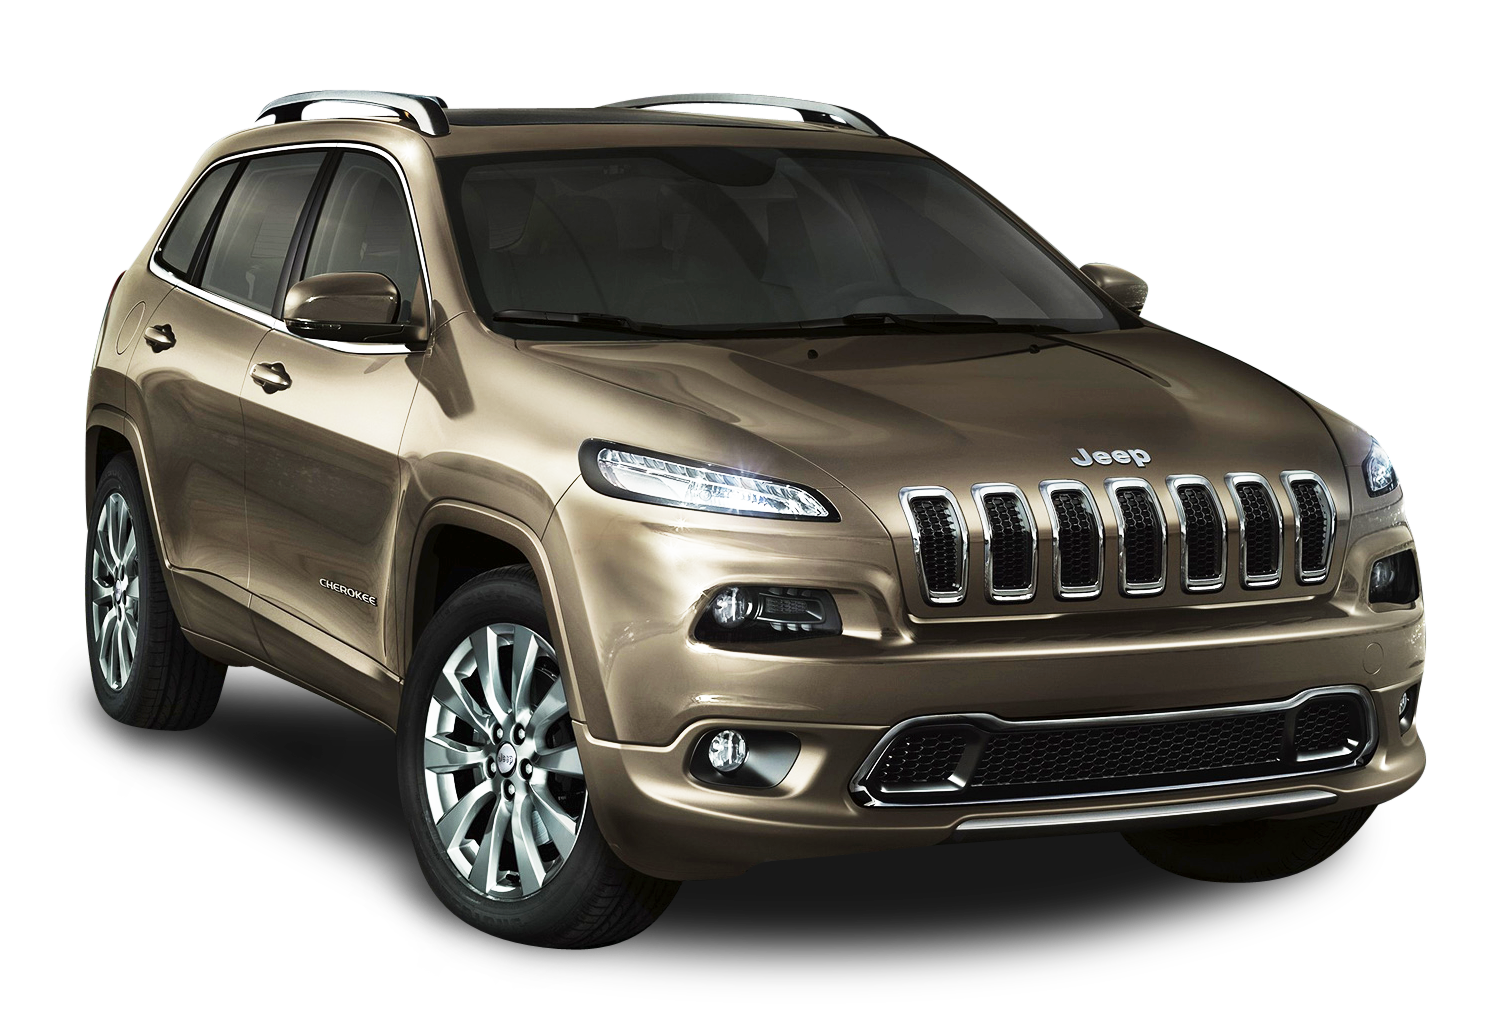 Jeep Grand Cherokee SUV Chocolate Car PNG Image.